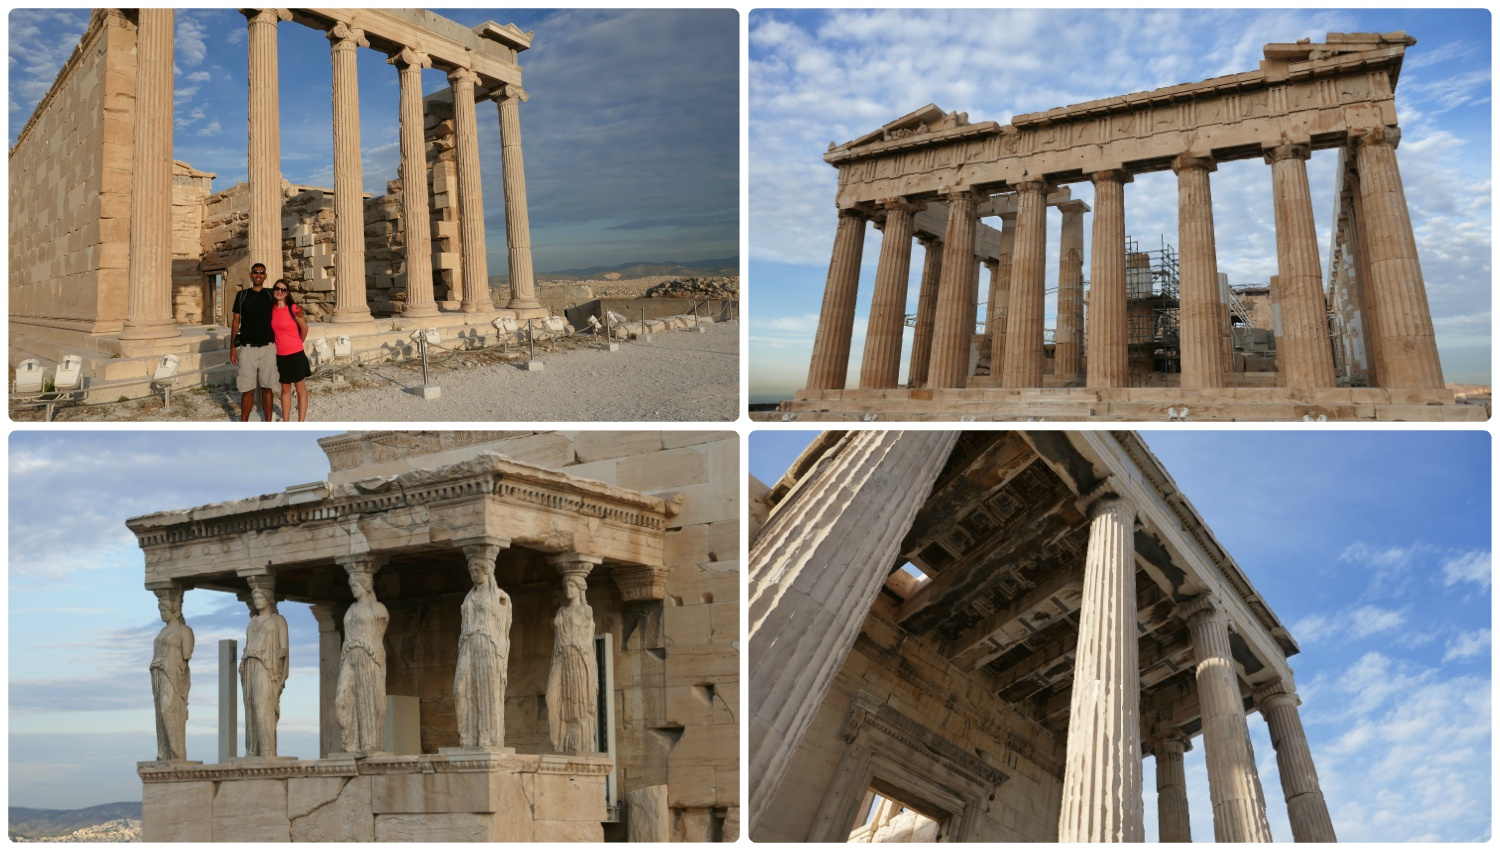 We'd seen pictures of it and learned about ancient Greek ruins in school, but once we were actually at the Athens Acropolis, it was a surreal experience! Clockwise (from the top left): Us in front of the Erechtheum, the Parthenon, the side of the Erechtheum, the Maiden's Porch.